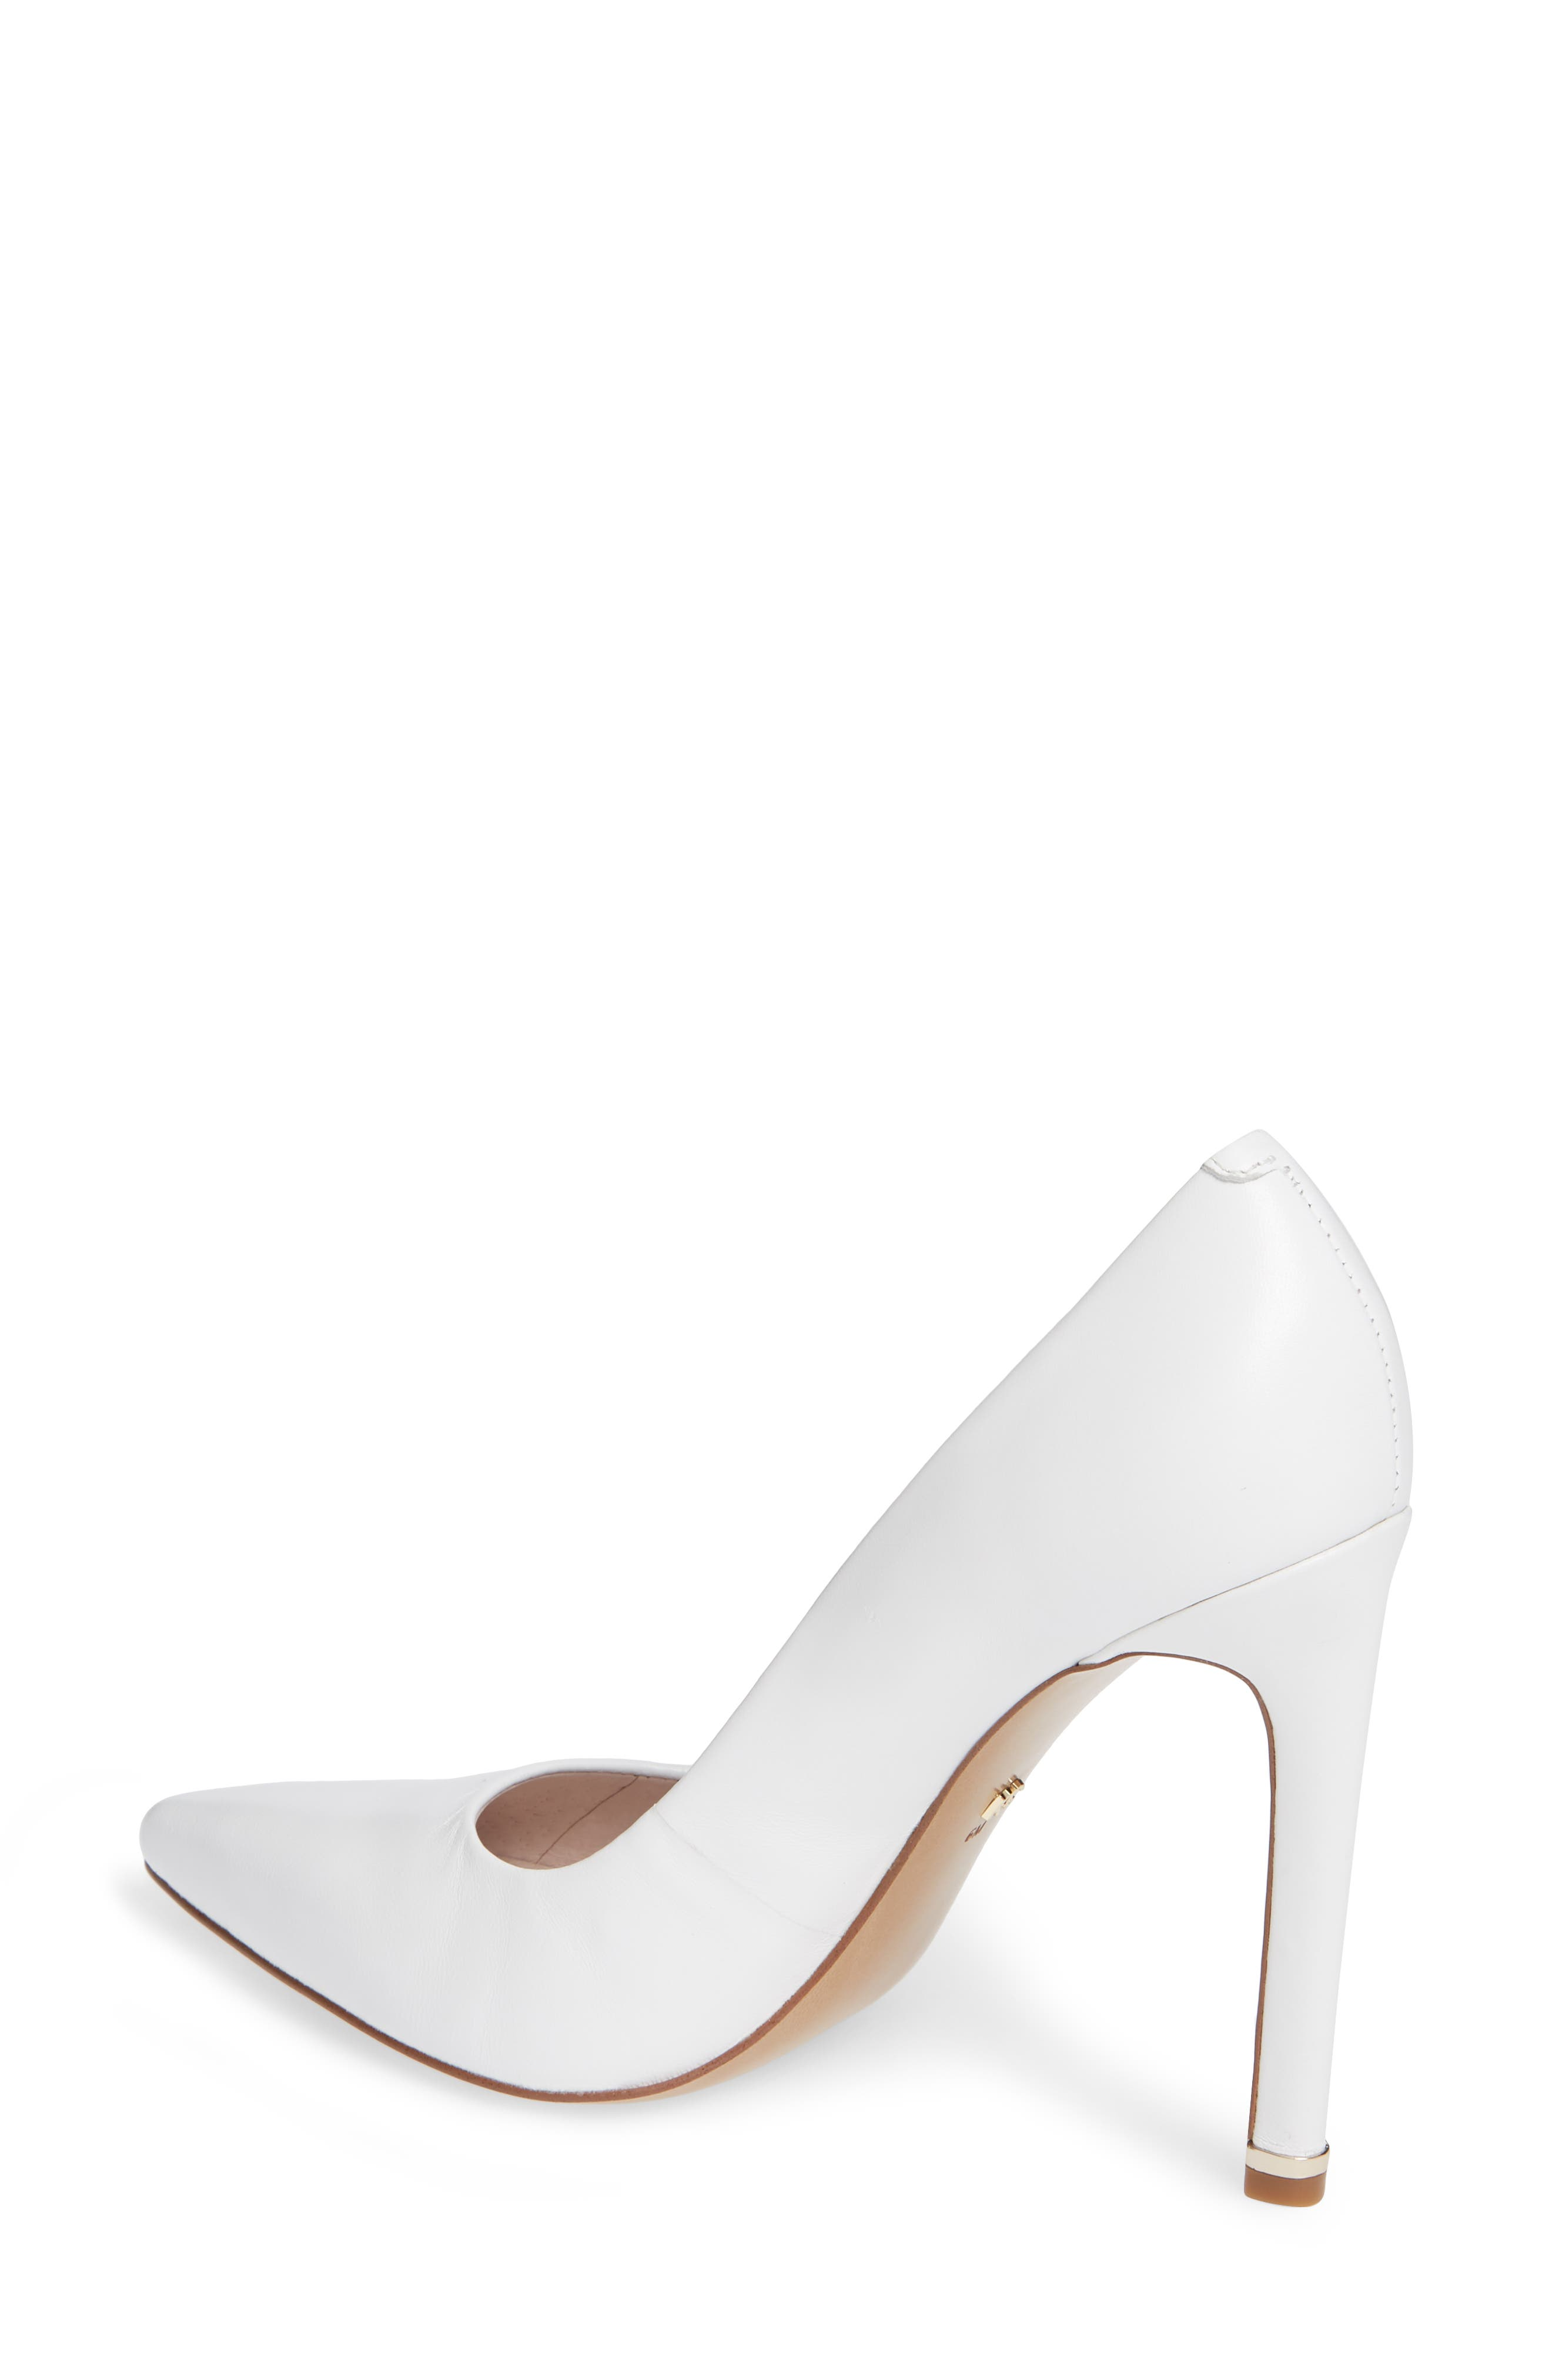 Riley 110 Pointy Toe Pump,                             Alternate thumbnail 2, color,                             WHITE LEATHER